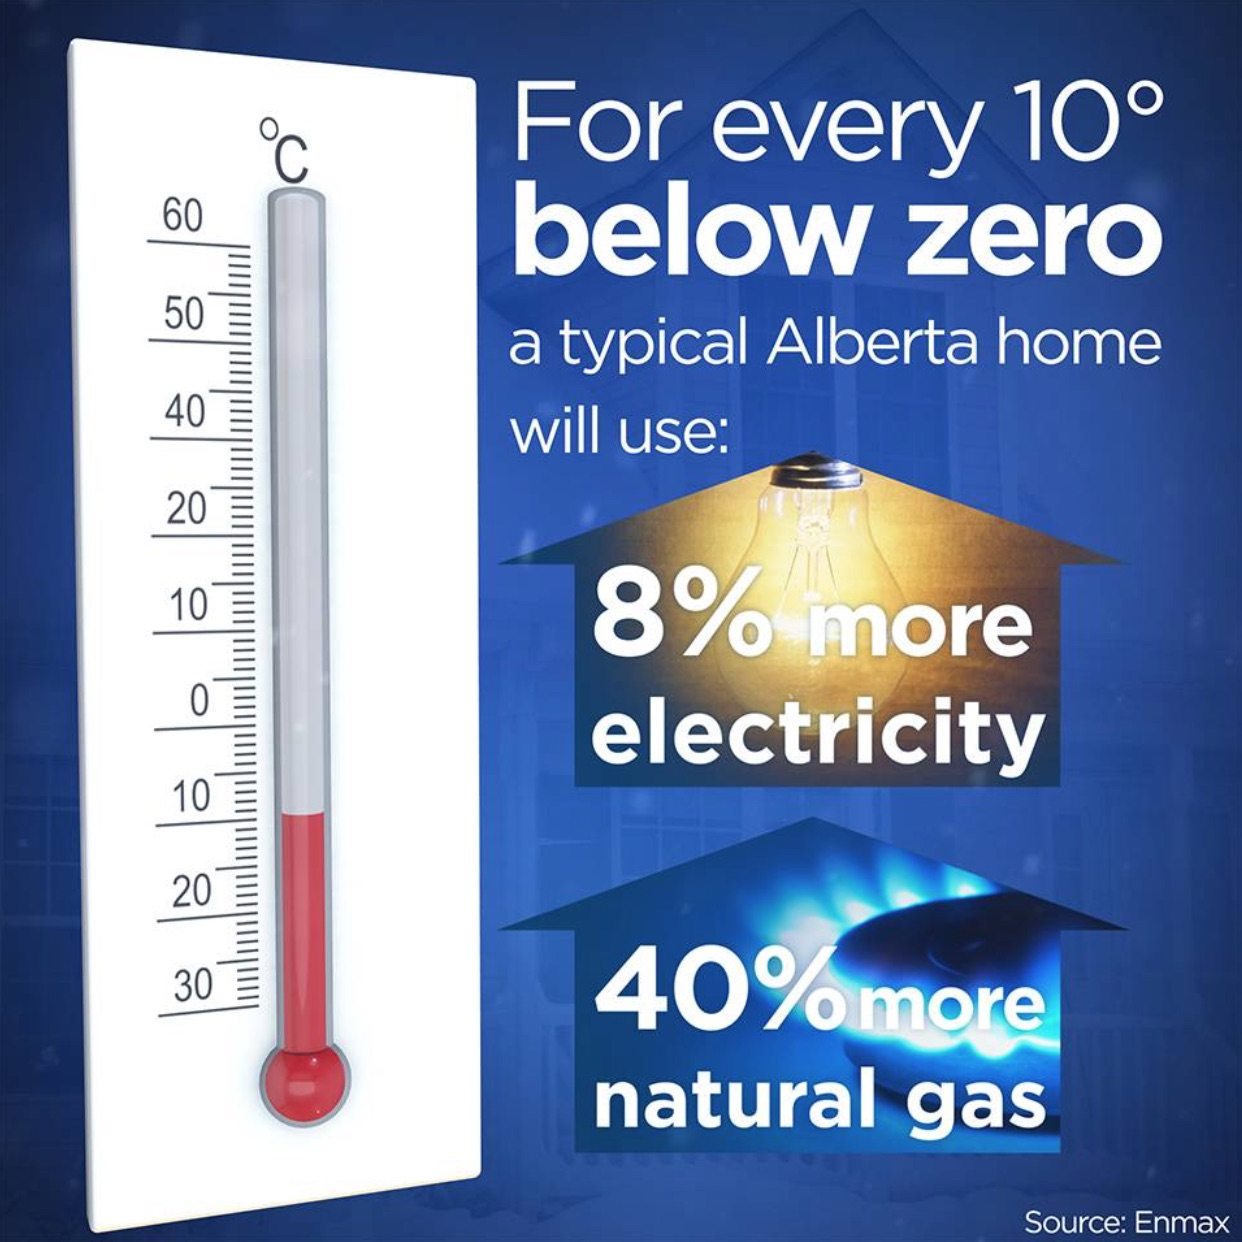 How to save energy but stay warm during Alberta's first cold snap of 2020